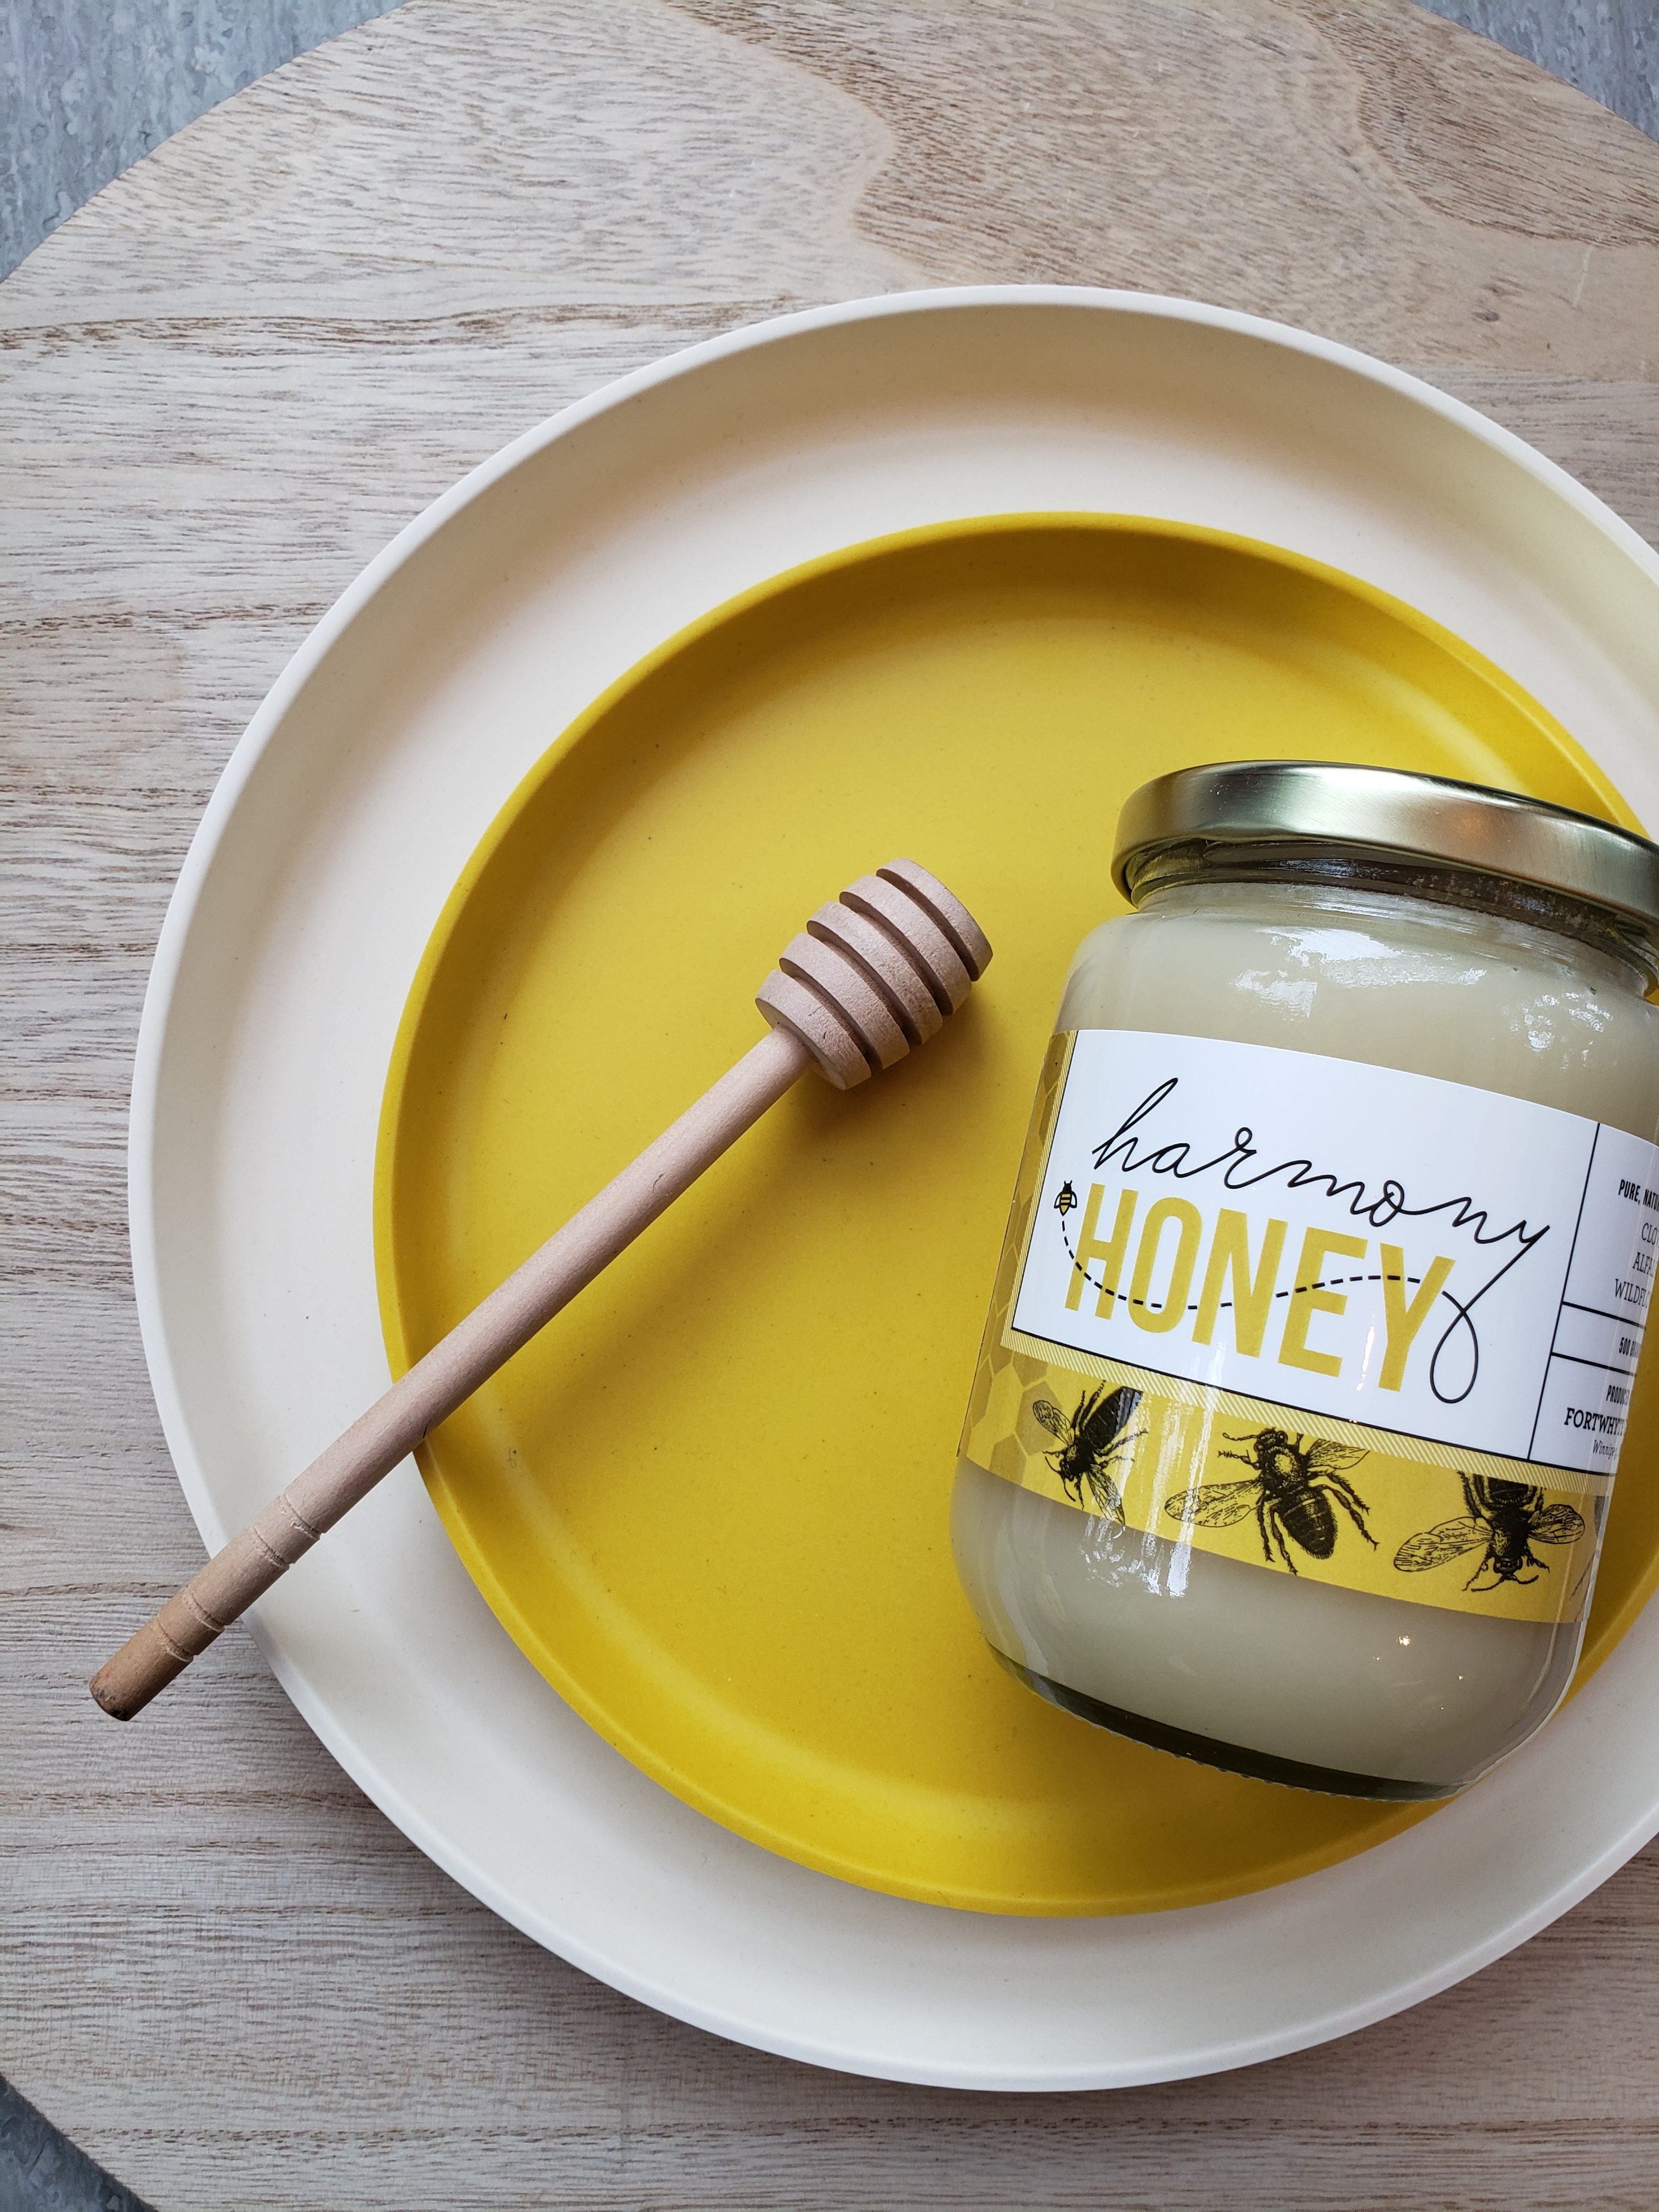 A jar of Harmony Honey from FortWhyte Farms